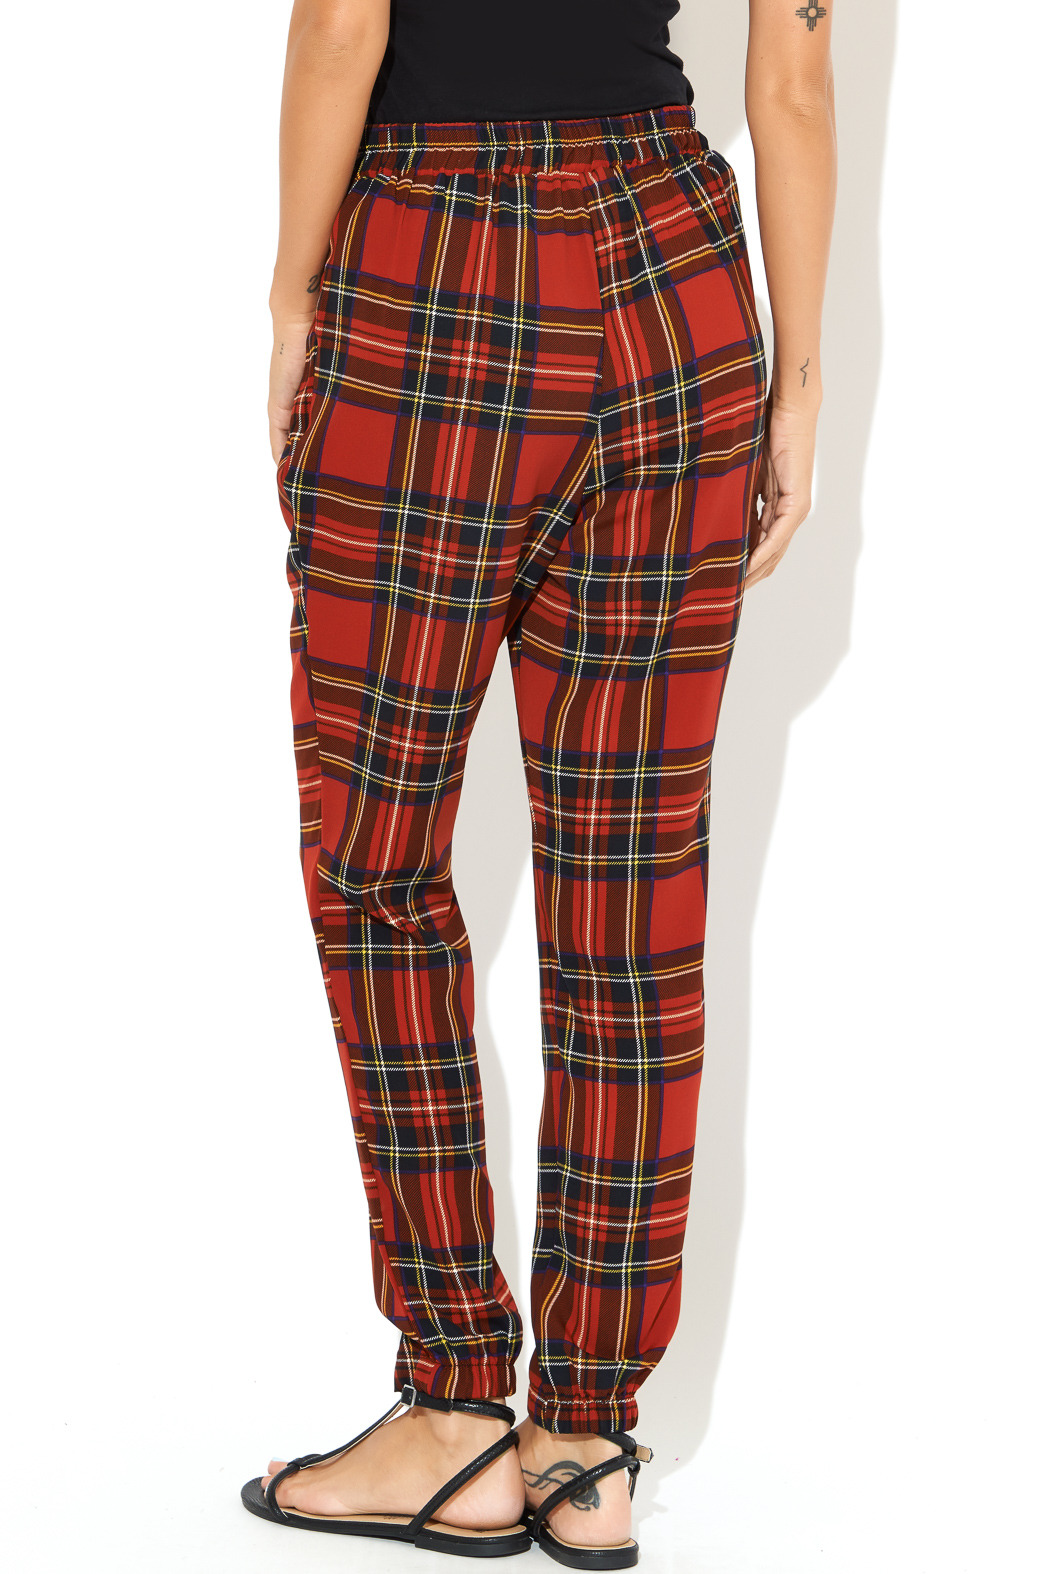 See You Monday Red Tartan Print Pants - Back Cropped Image